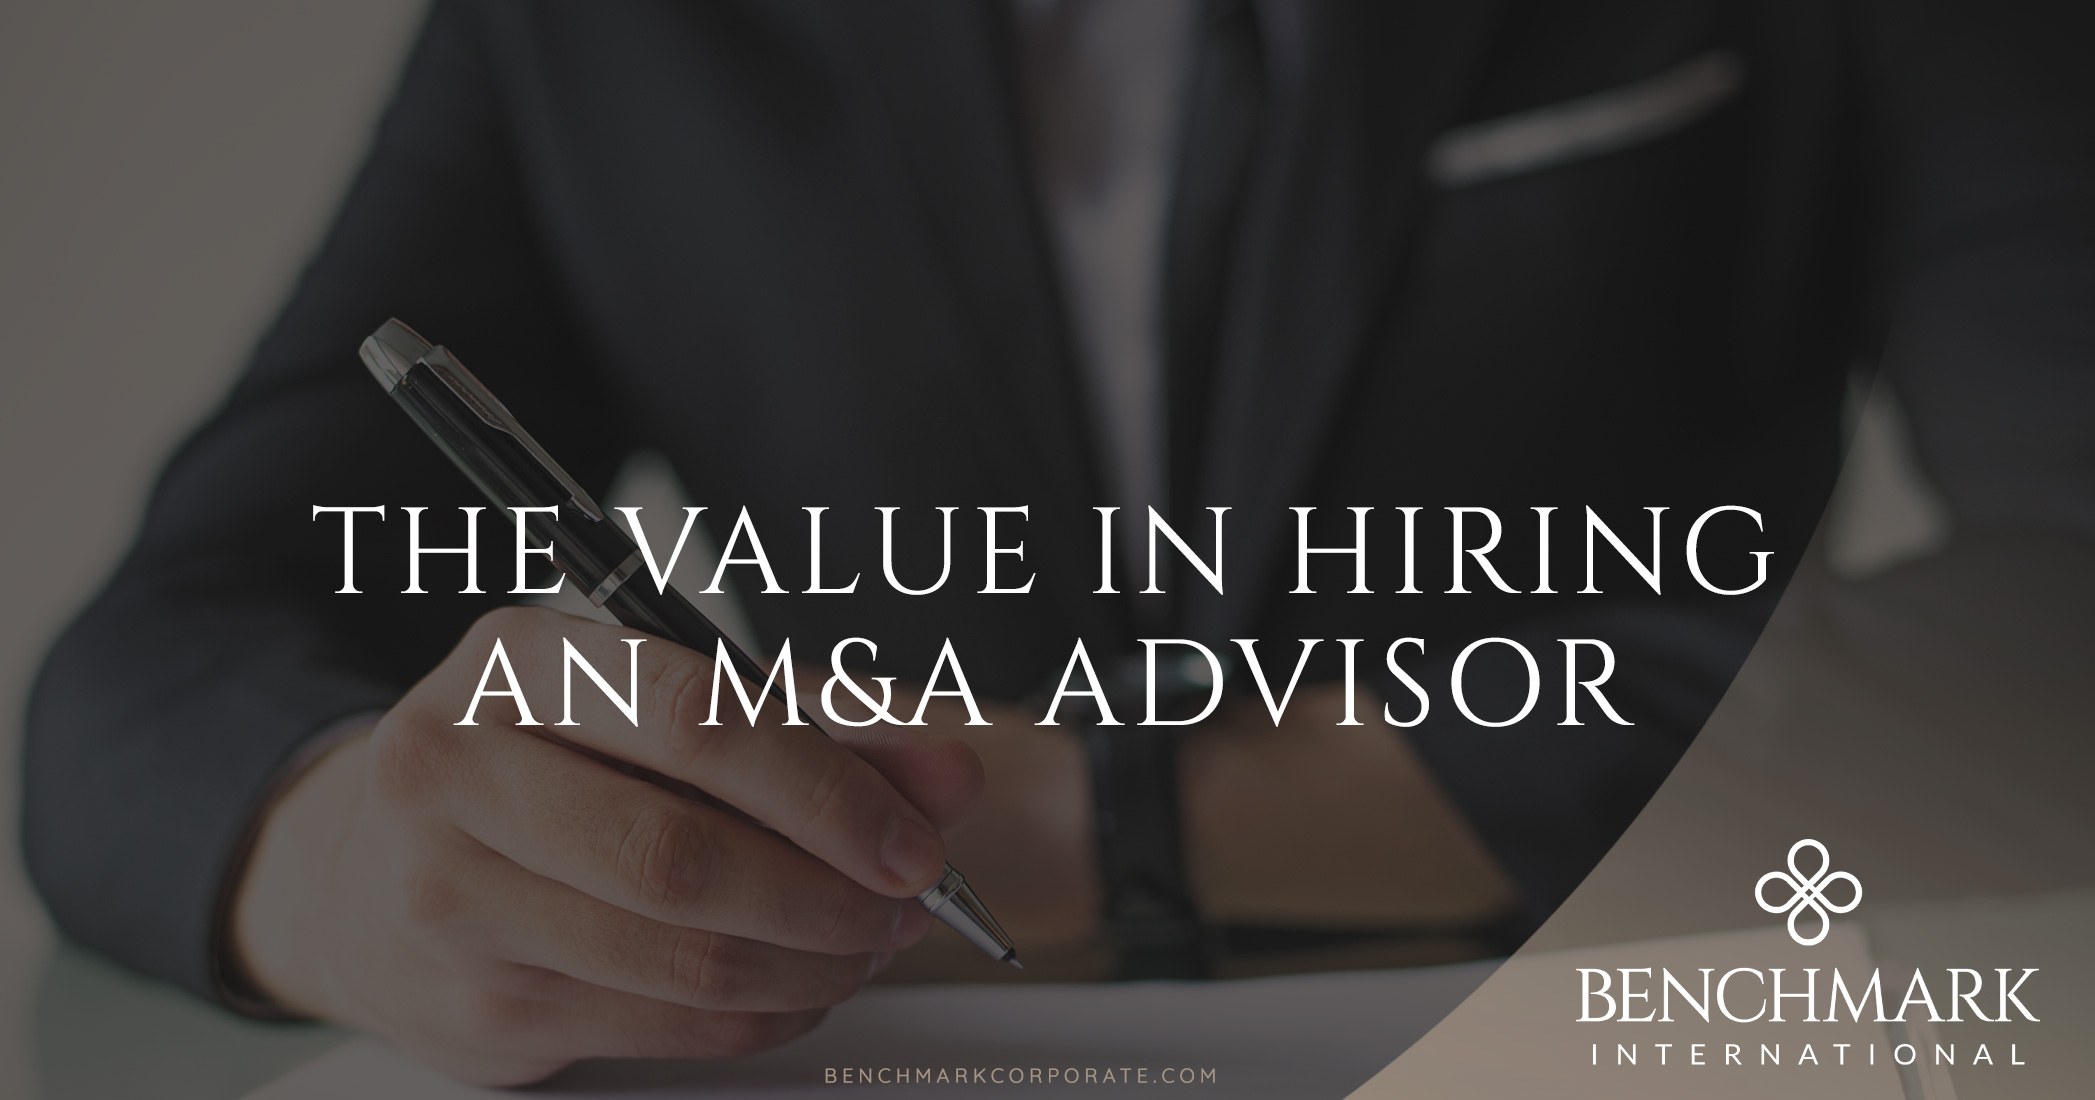 The Value In Hiring An M&A Advisor